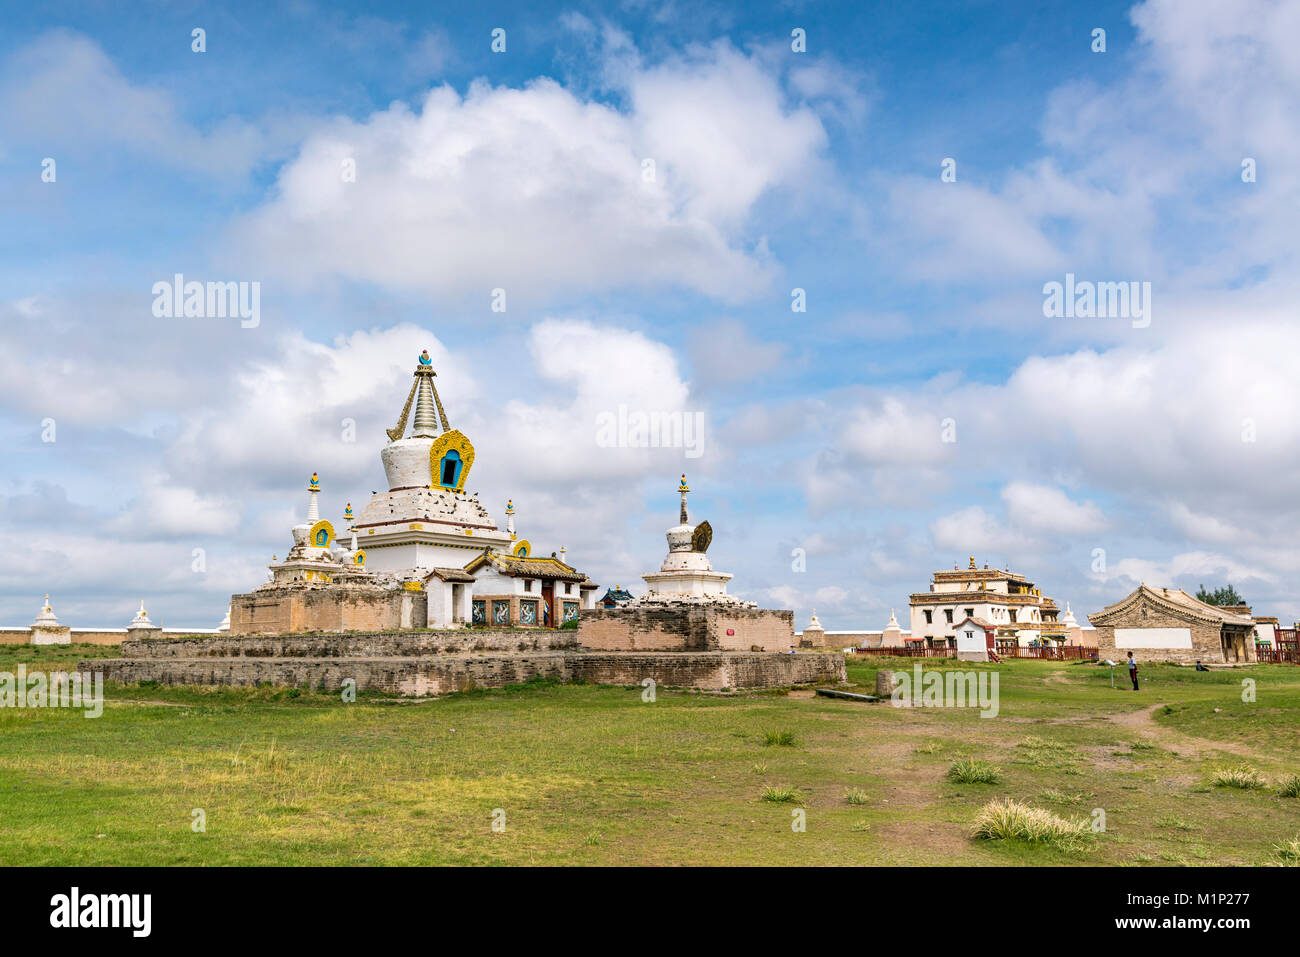 Stupas and buildings in Erdene Zuu Monastery, Harhorin, South Hangay province, Mongolia, Central Asia, Asia - Stock Image